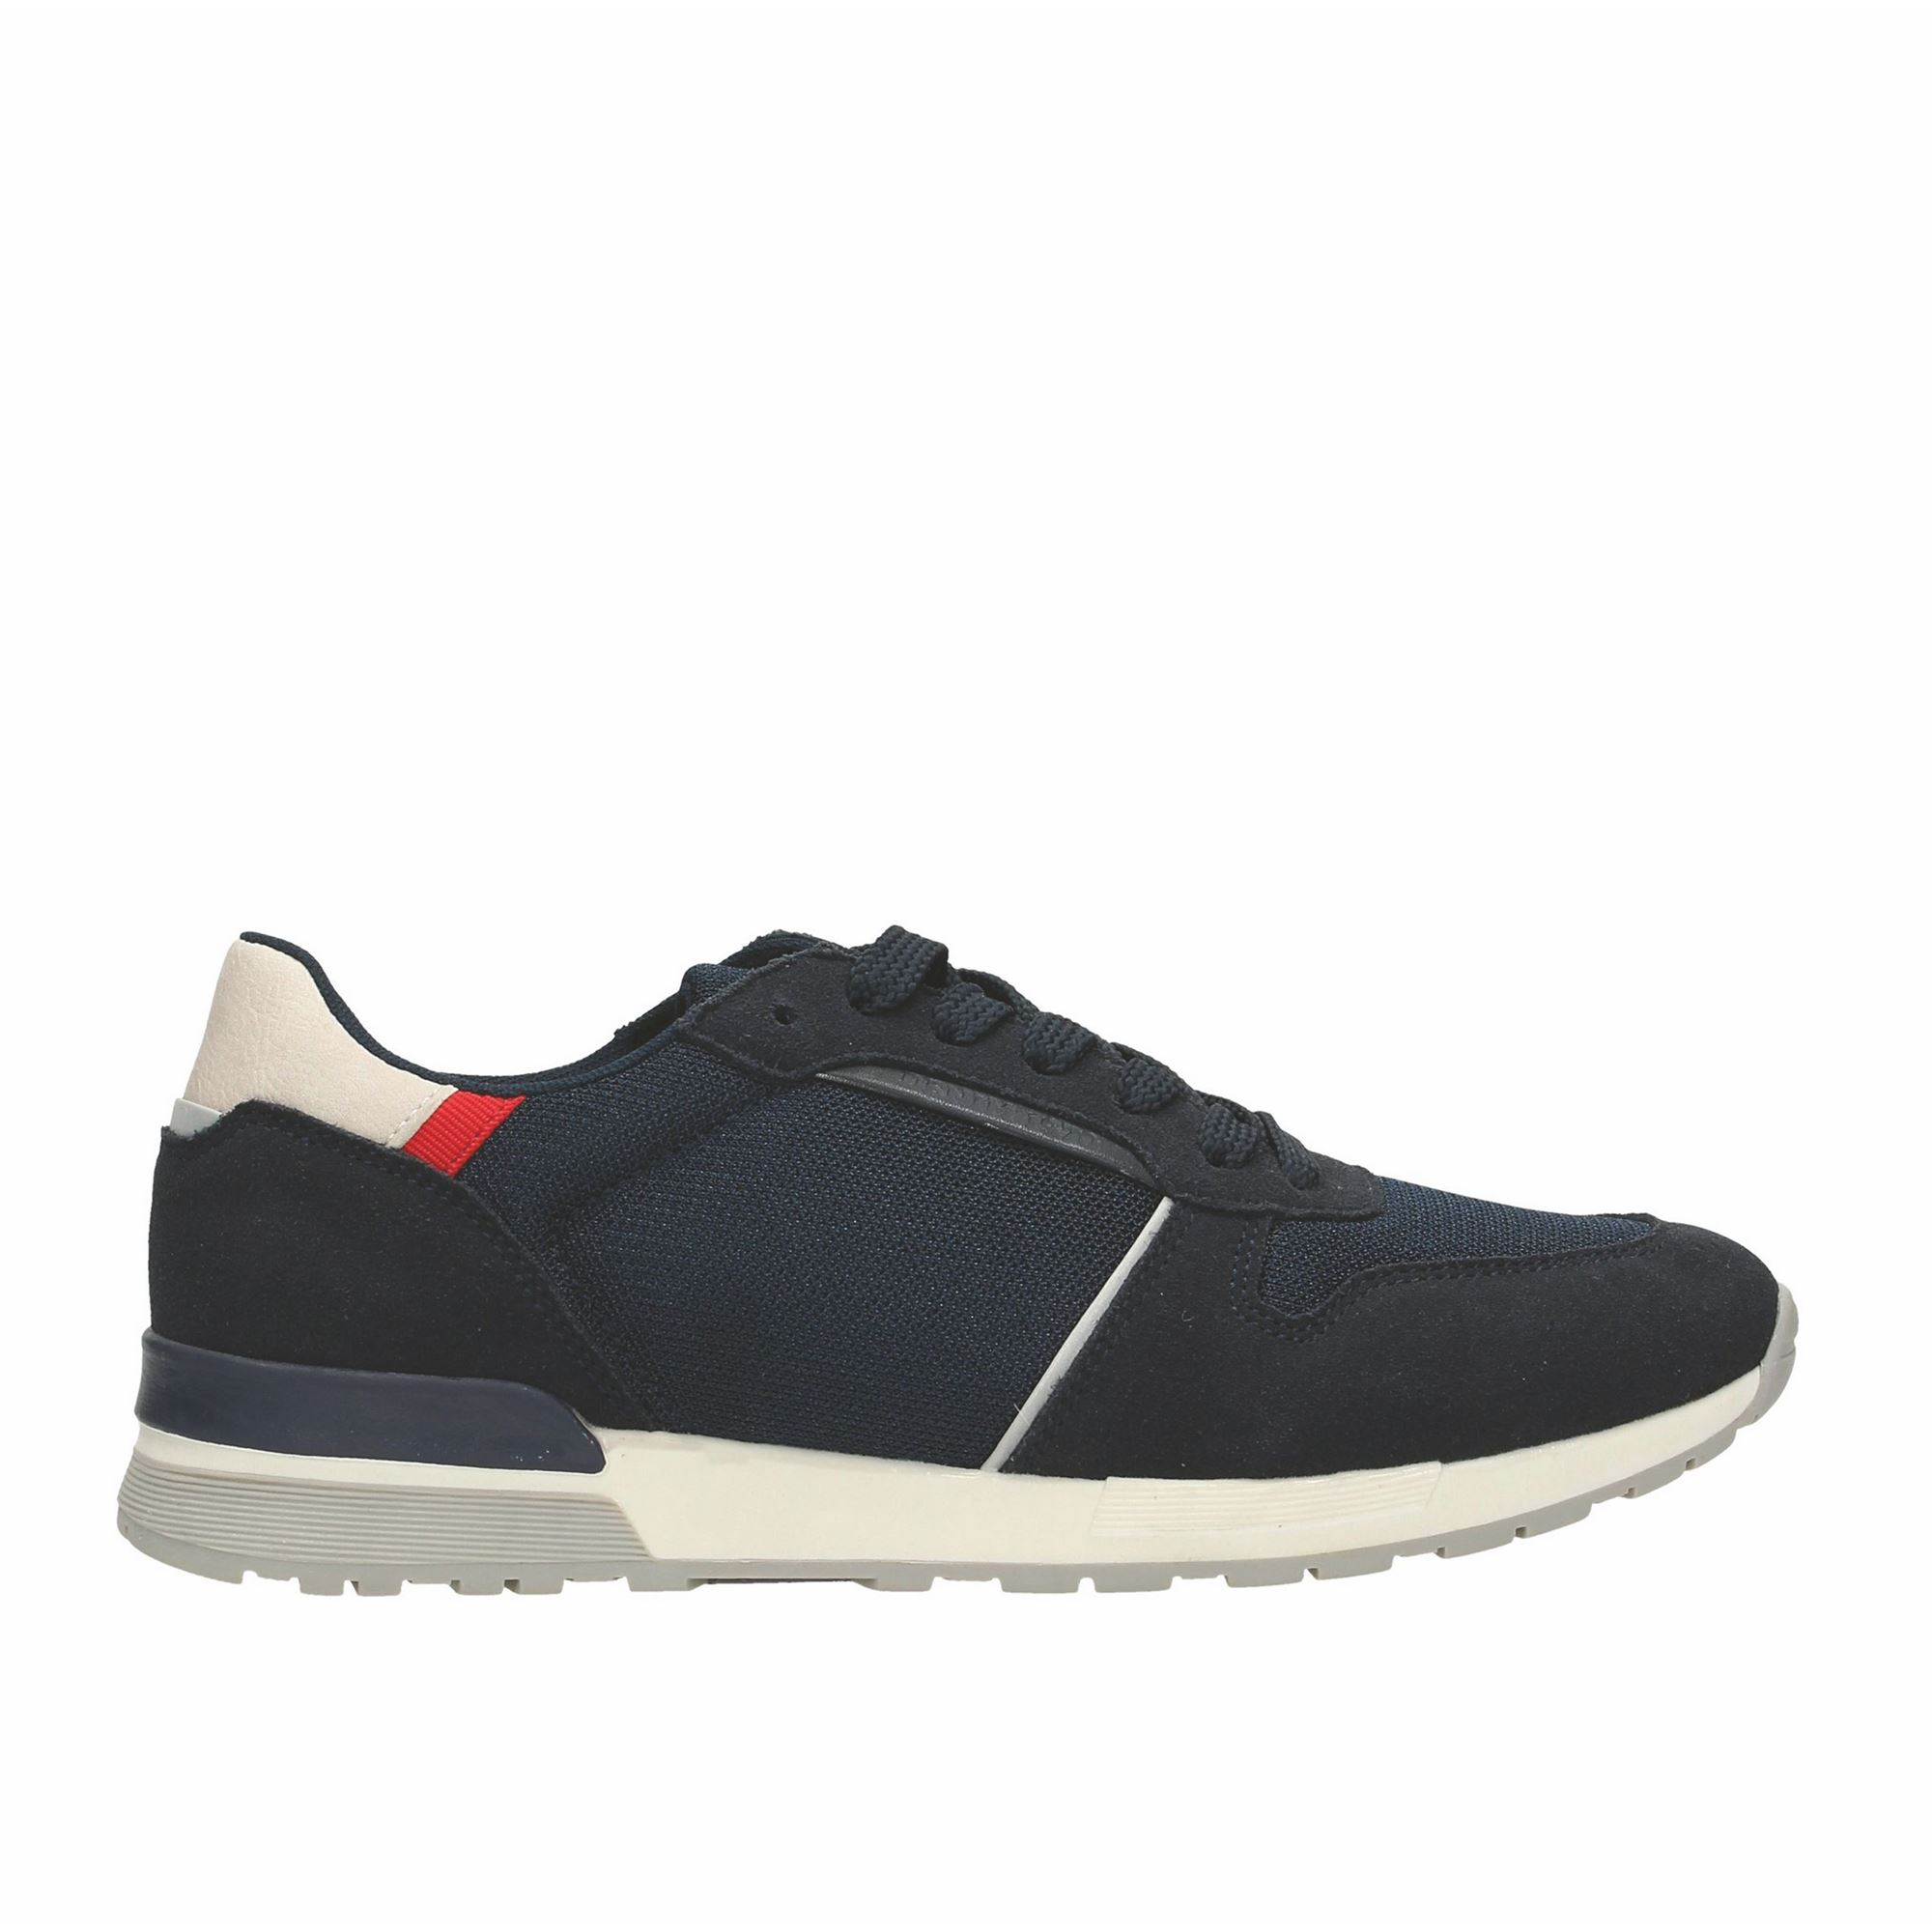 Tata Italia Shoes Man Sneakers Navy KMS8150